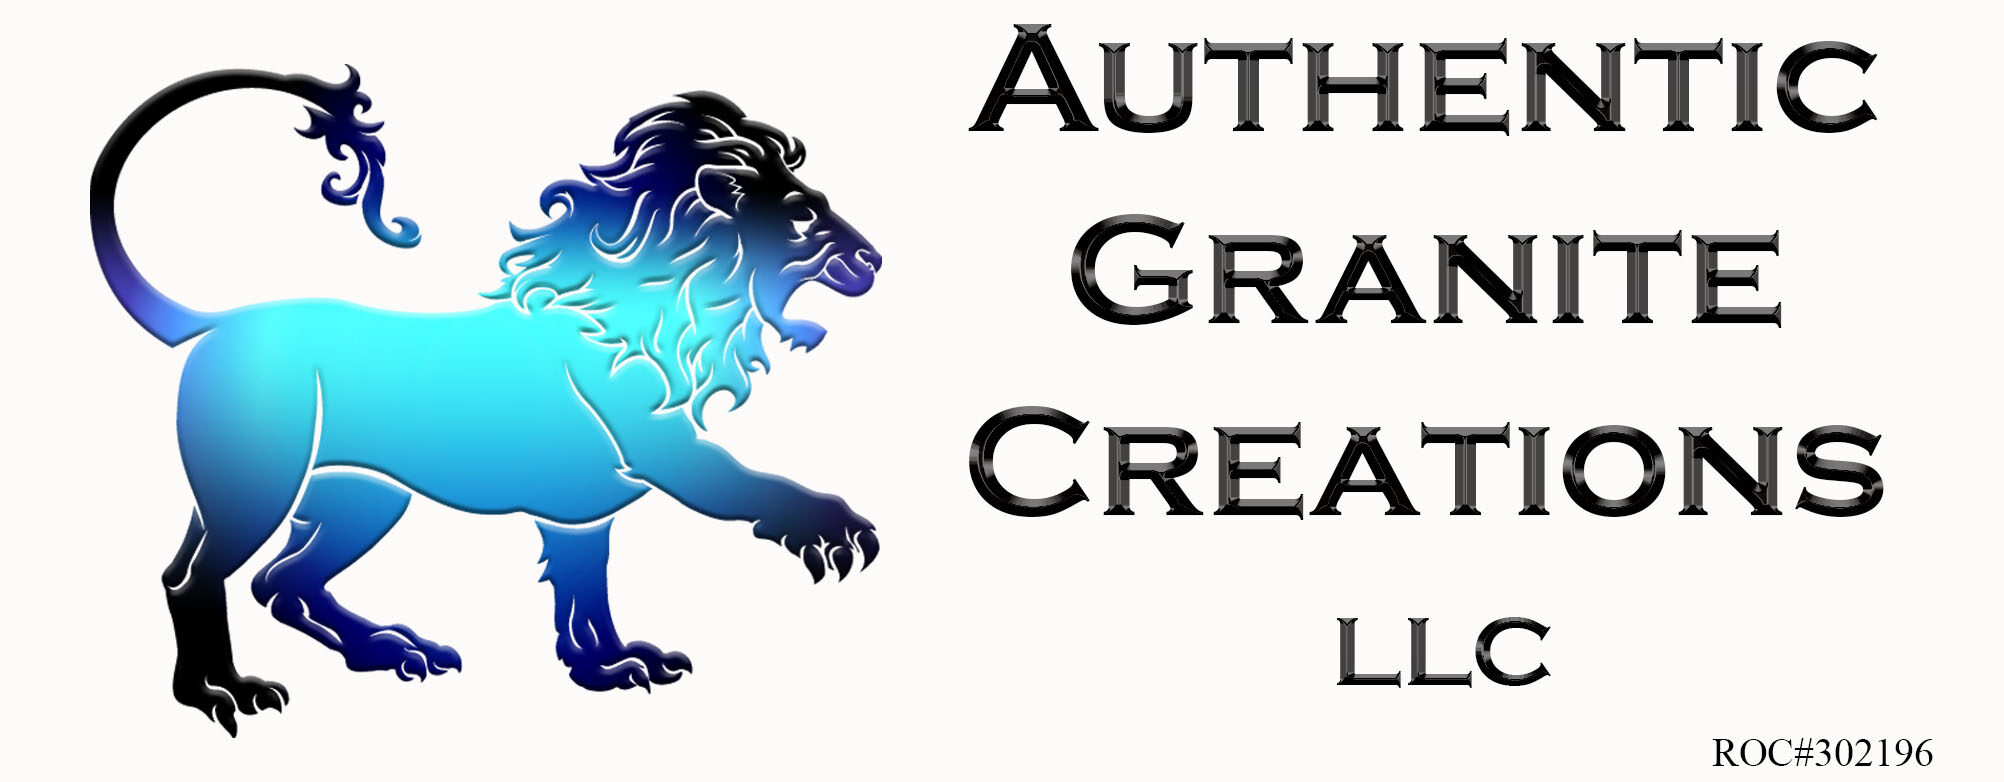 Authentic Granite Creations